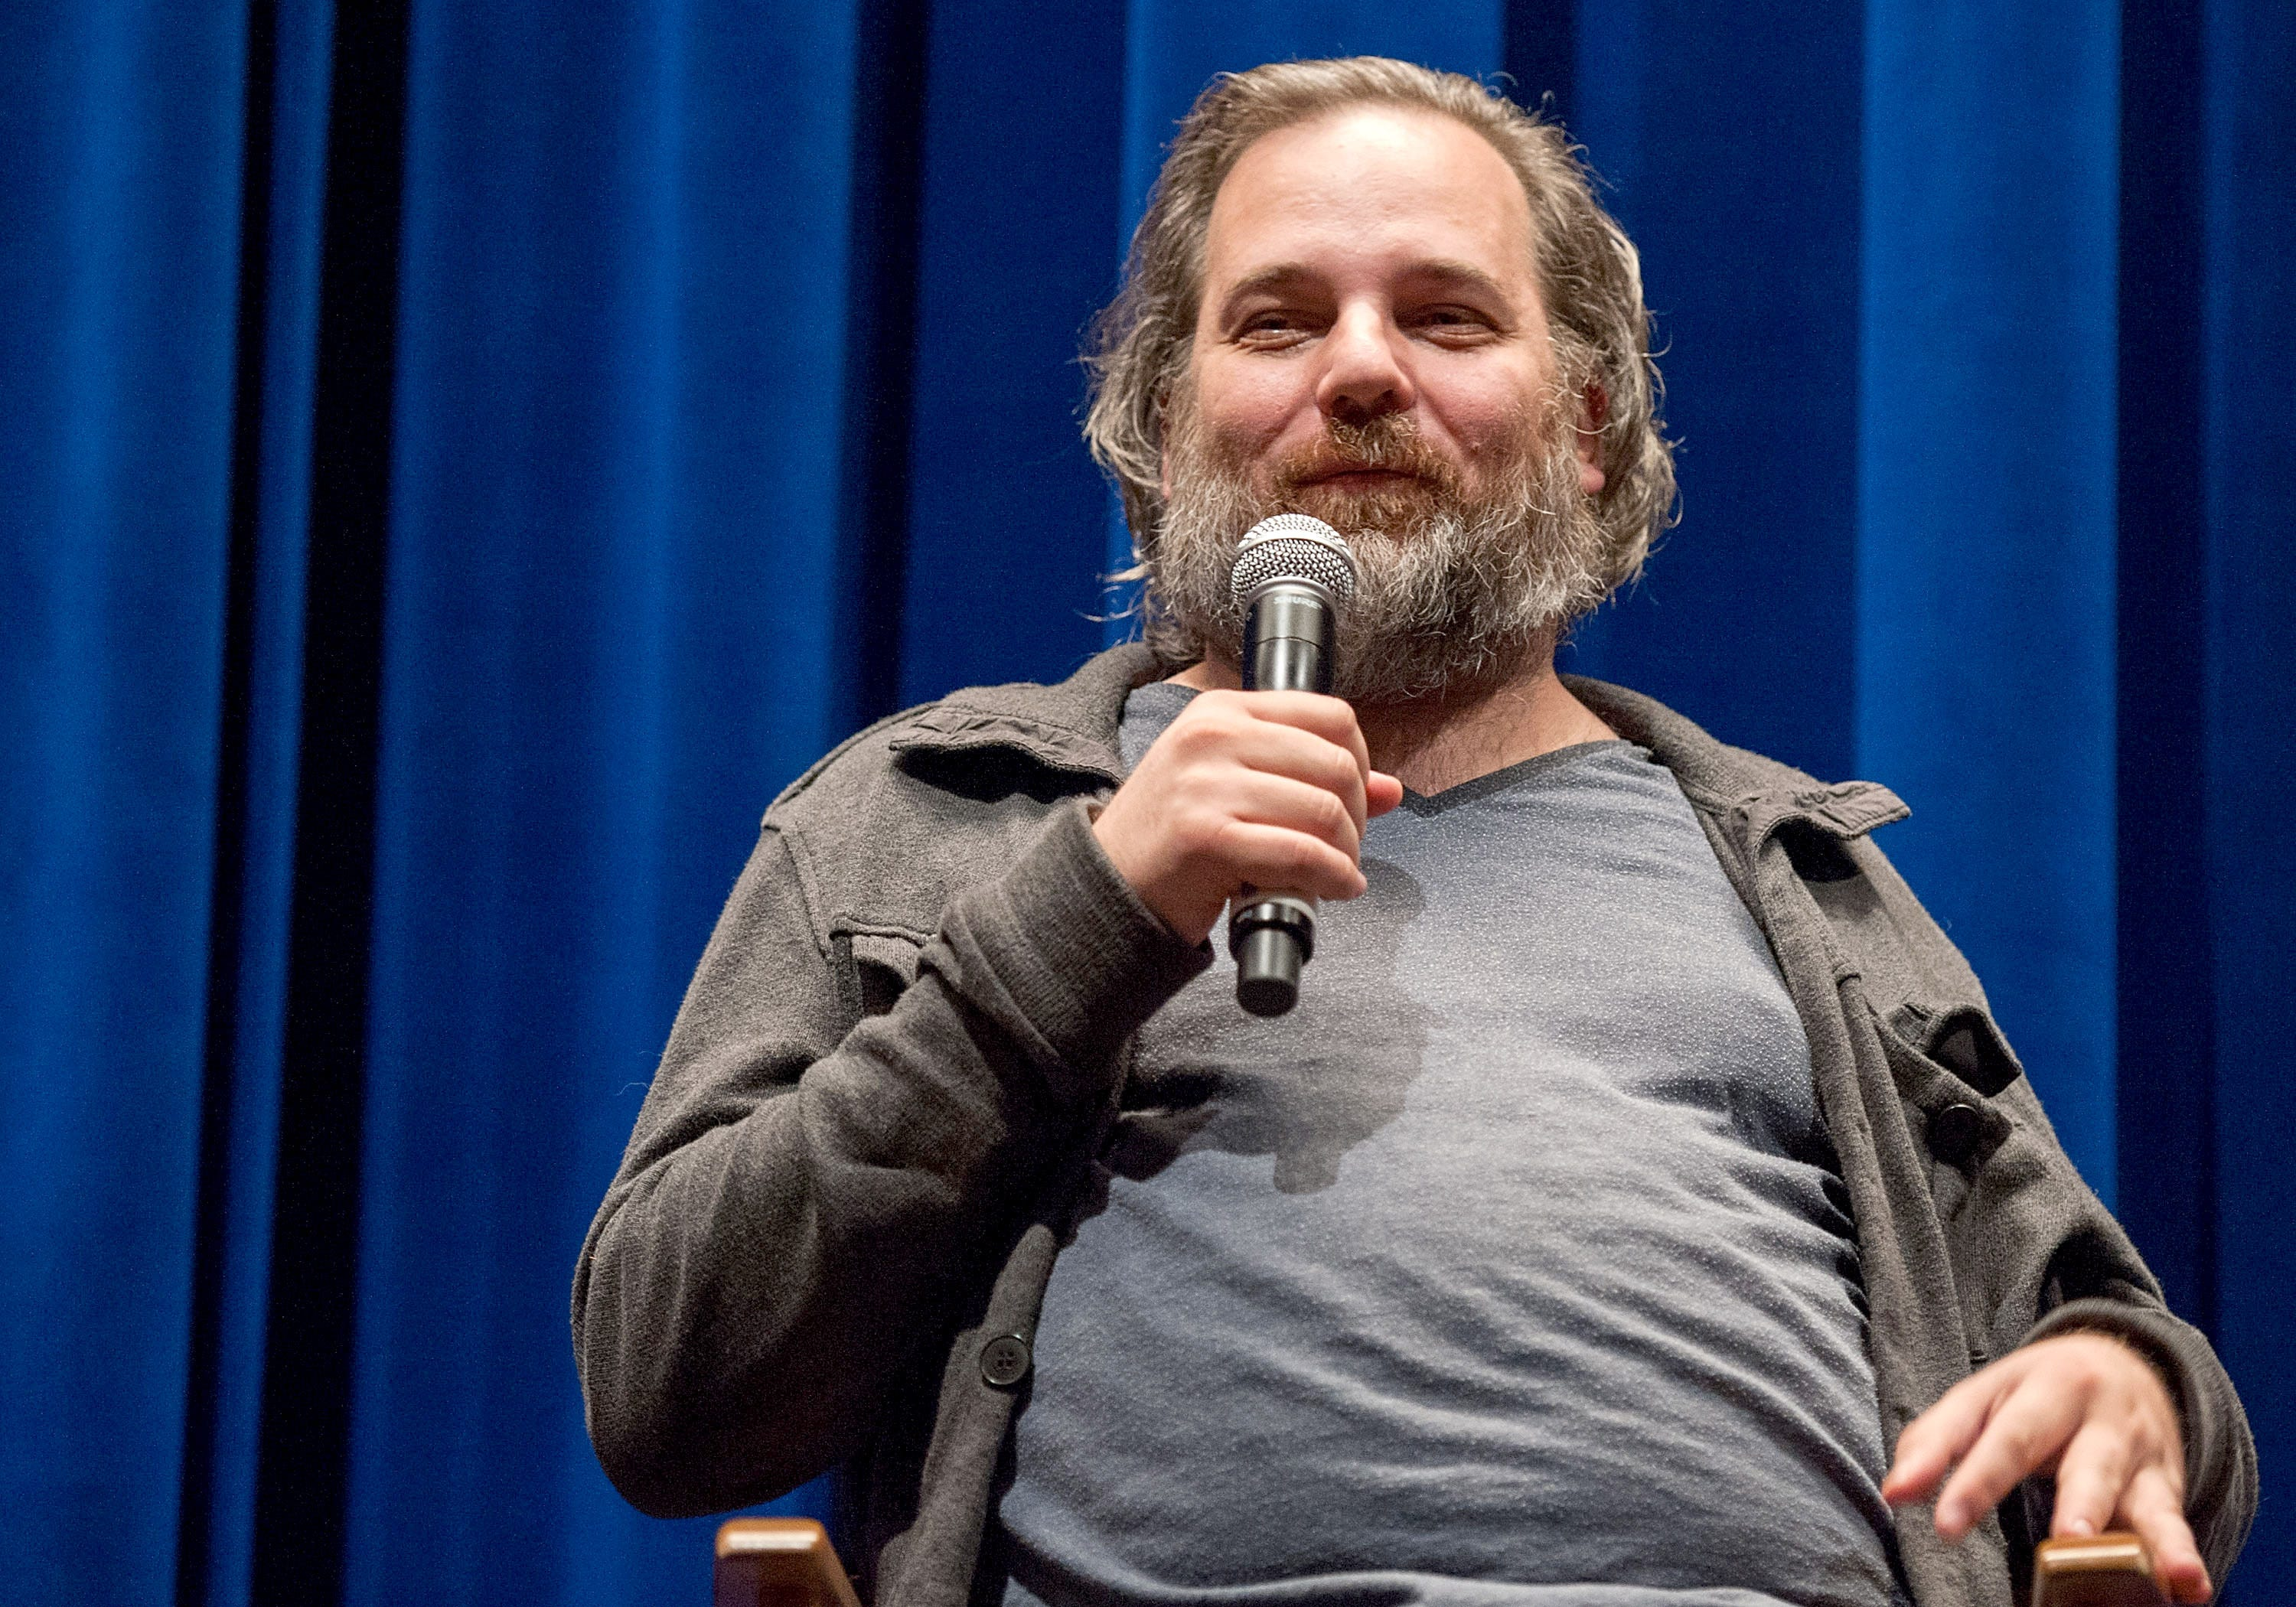 'Rick and Morty' co-creator Dan Harmon apologizes for offensive skit